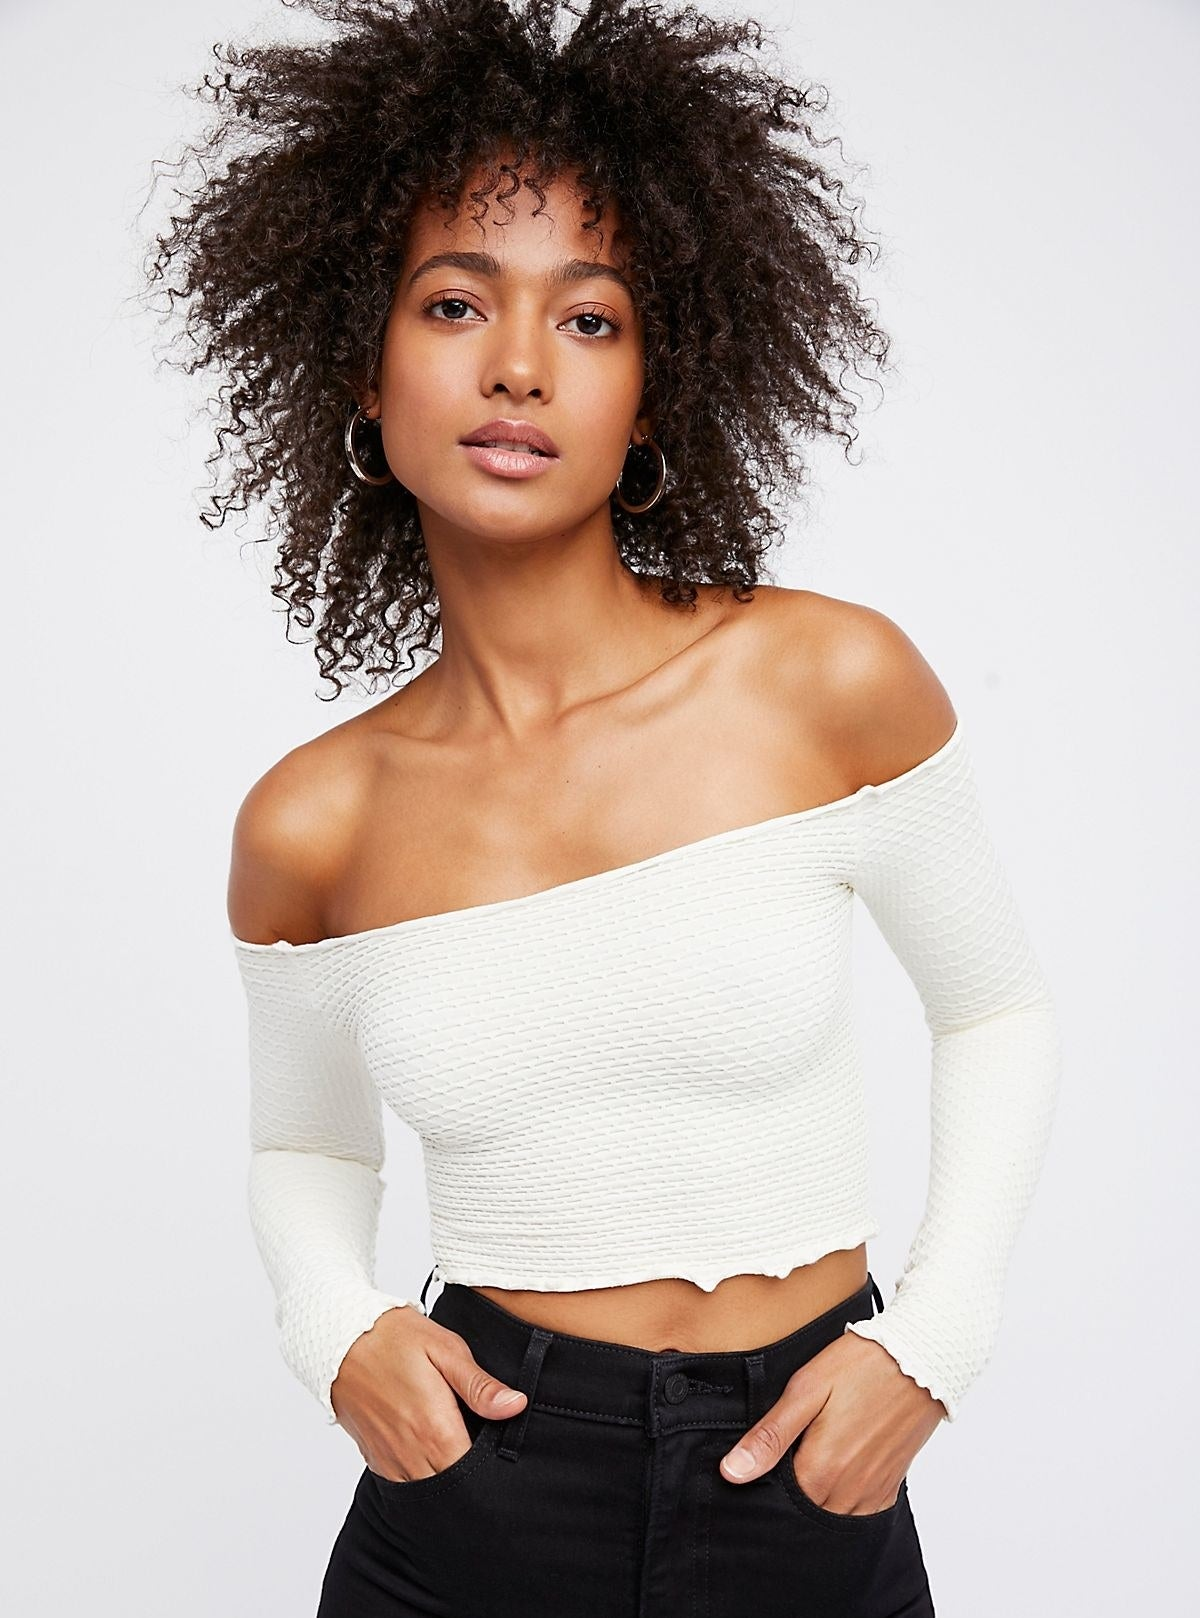 "Promising review: ""This top is so cute and comfortable! The stretchy fabric is loose enough to move around, but also tight enough to wear without a bra. I would definitely purchase this again in other colors!"" —mfotinoPrice: $24 (originally $48; available in sizes XS/S-M/L and 11 colors)"